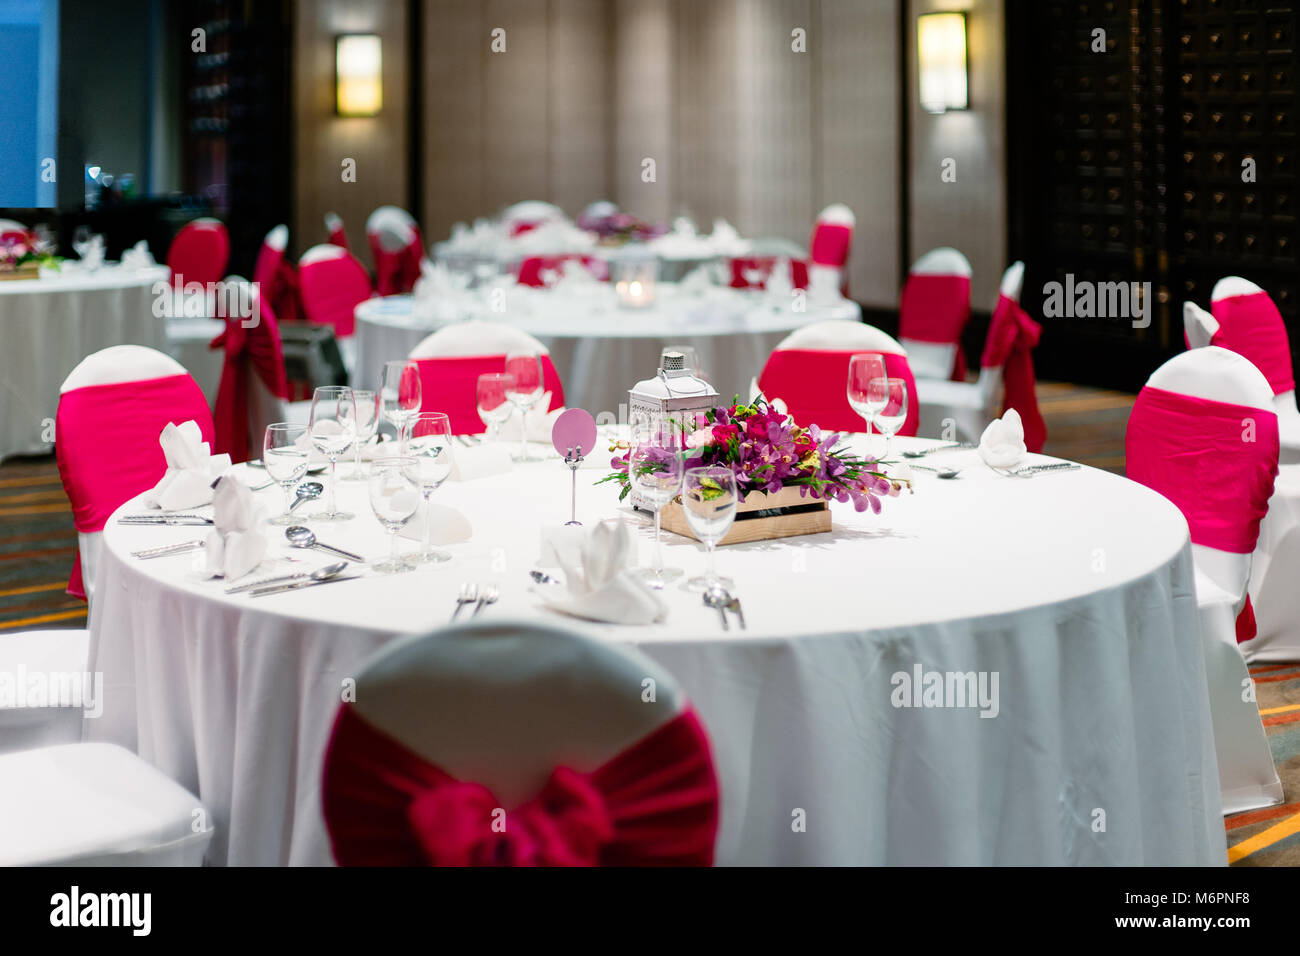 wedding reception chair covers and sashes walmart bath the dinner table decorated with orchids flowers candle white spandex chairs cover red organza sash